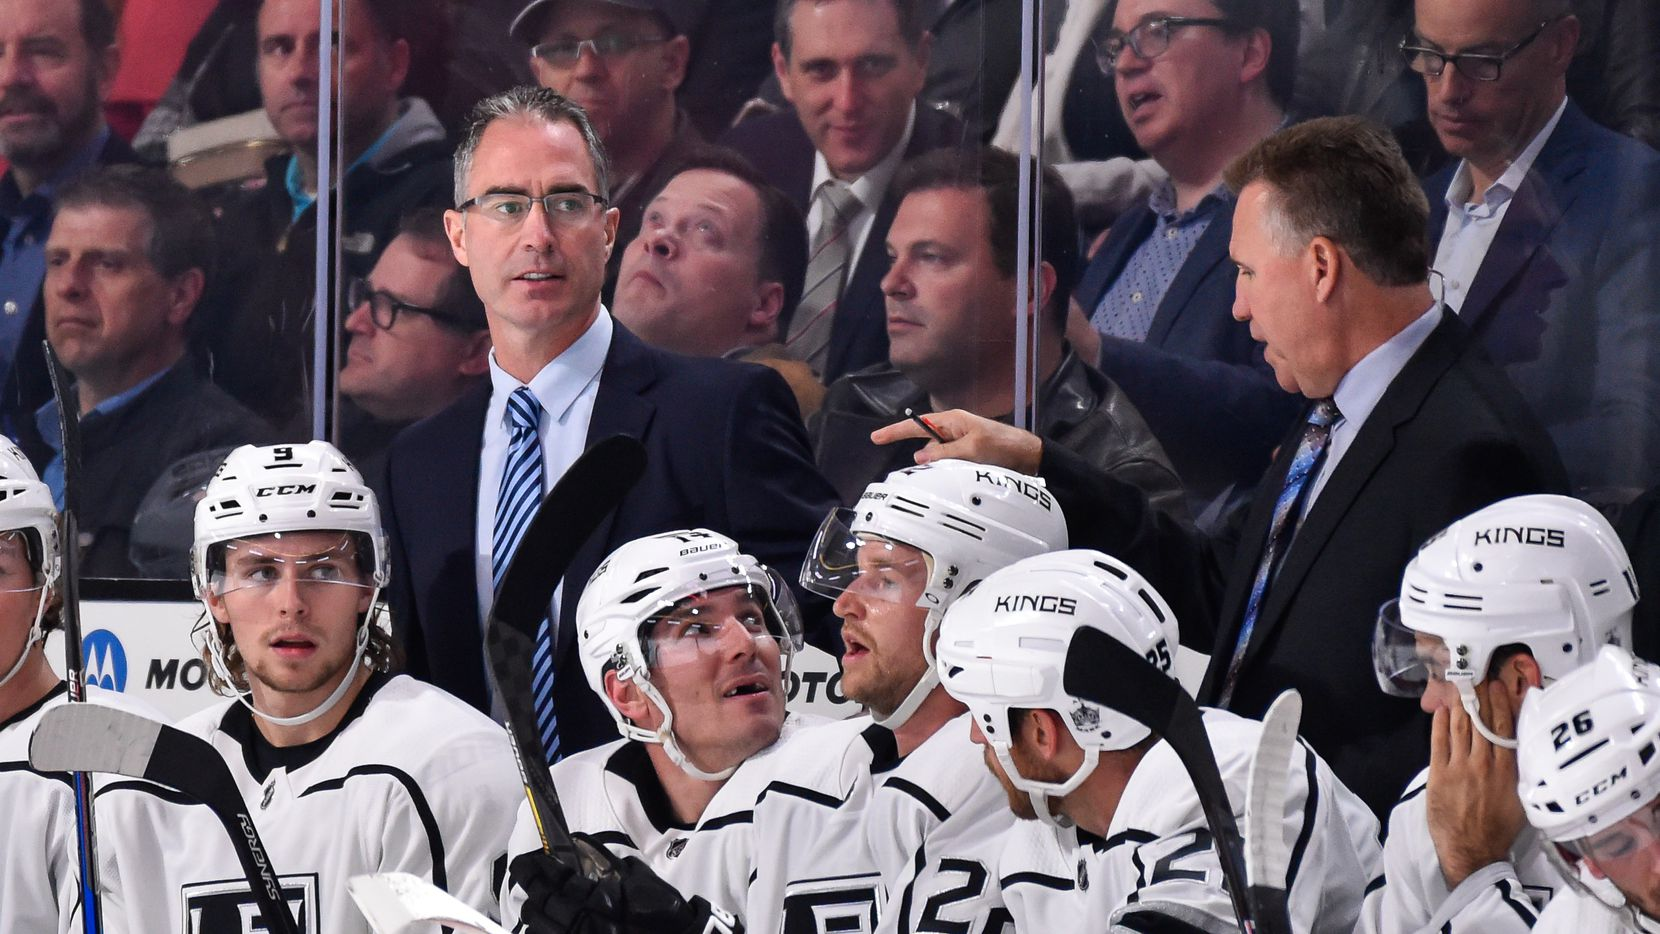 MONTREAL, QC - OCTOBER 26:  Head coach of the Los Angeles Kings John Stevens looks on from the bench against the Montreal Canadiens during the NHL game at the Bell Centre on October 26, 2017 in Montreal, Quebec, Canada.  The Los Angeles Kings defeated the Montreal Canadiens 4-0.  (Photo by Minas Panagiotakis/Getty Images)